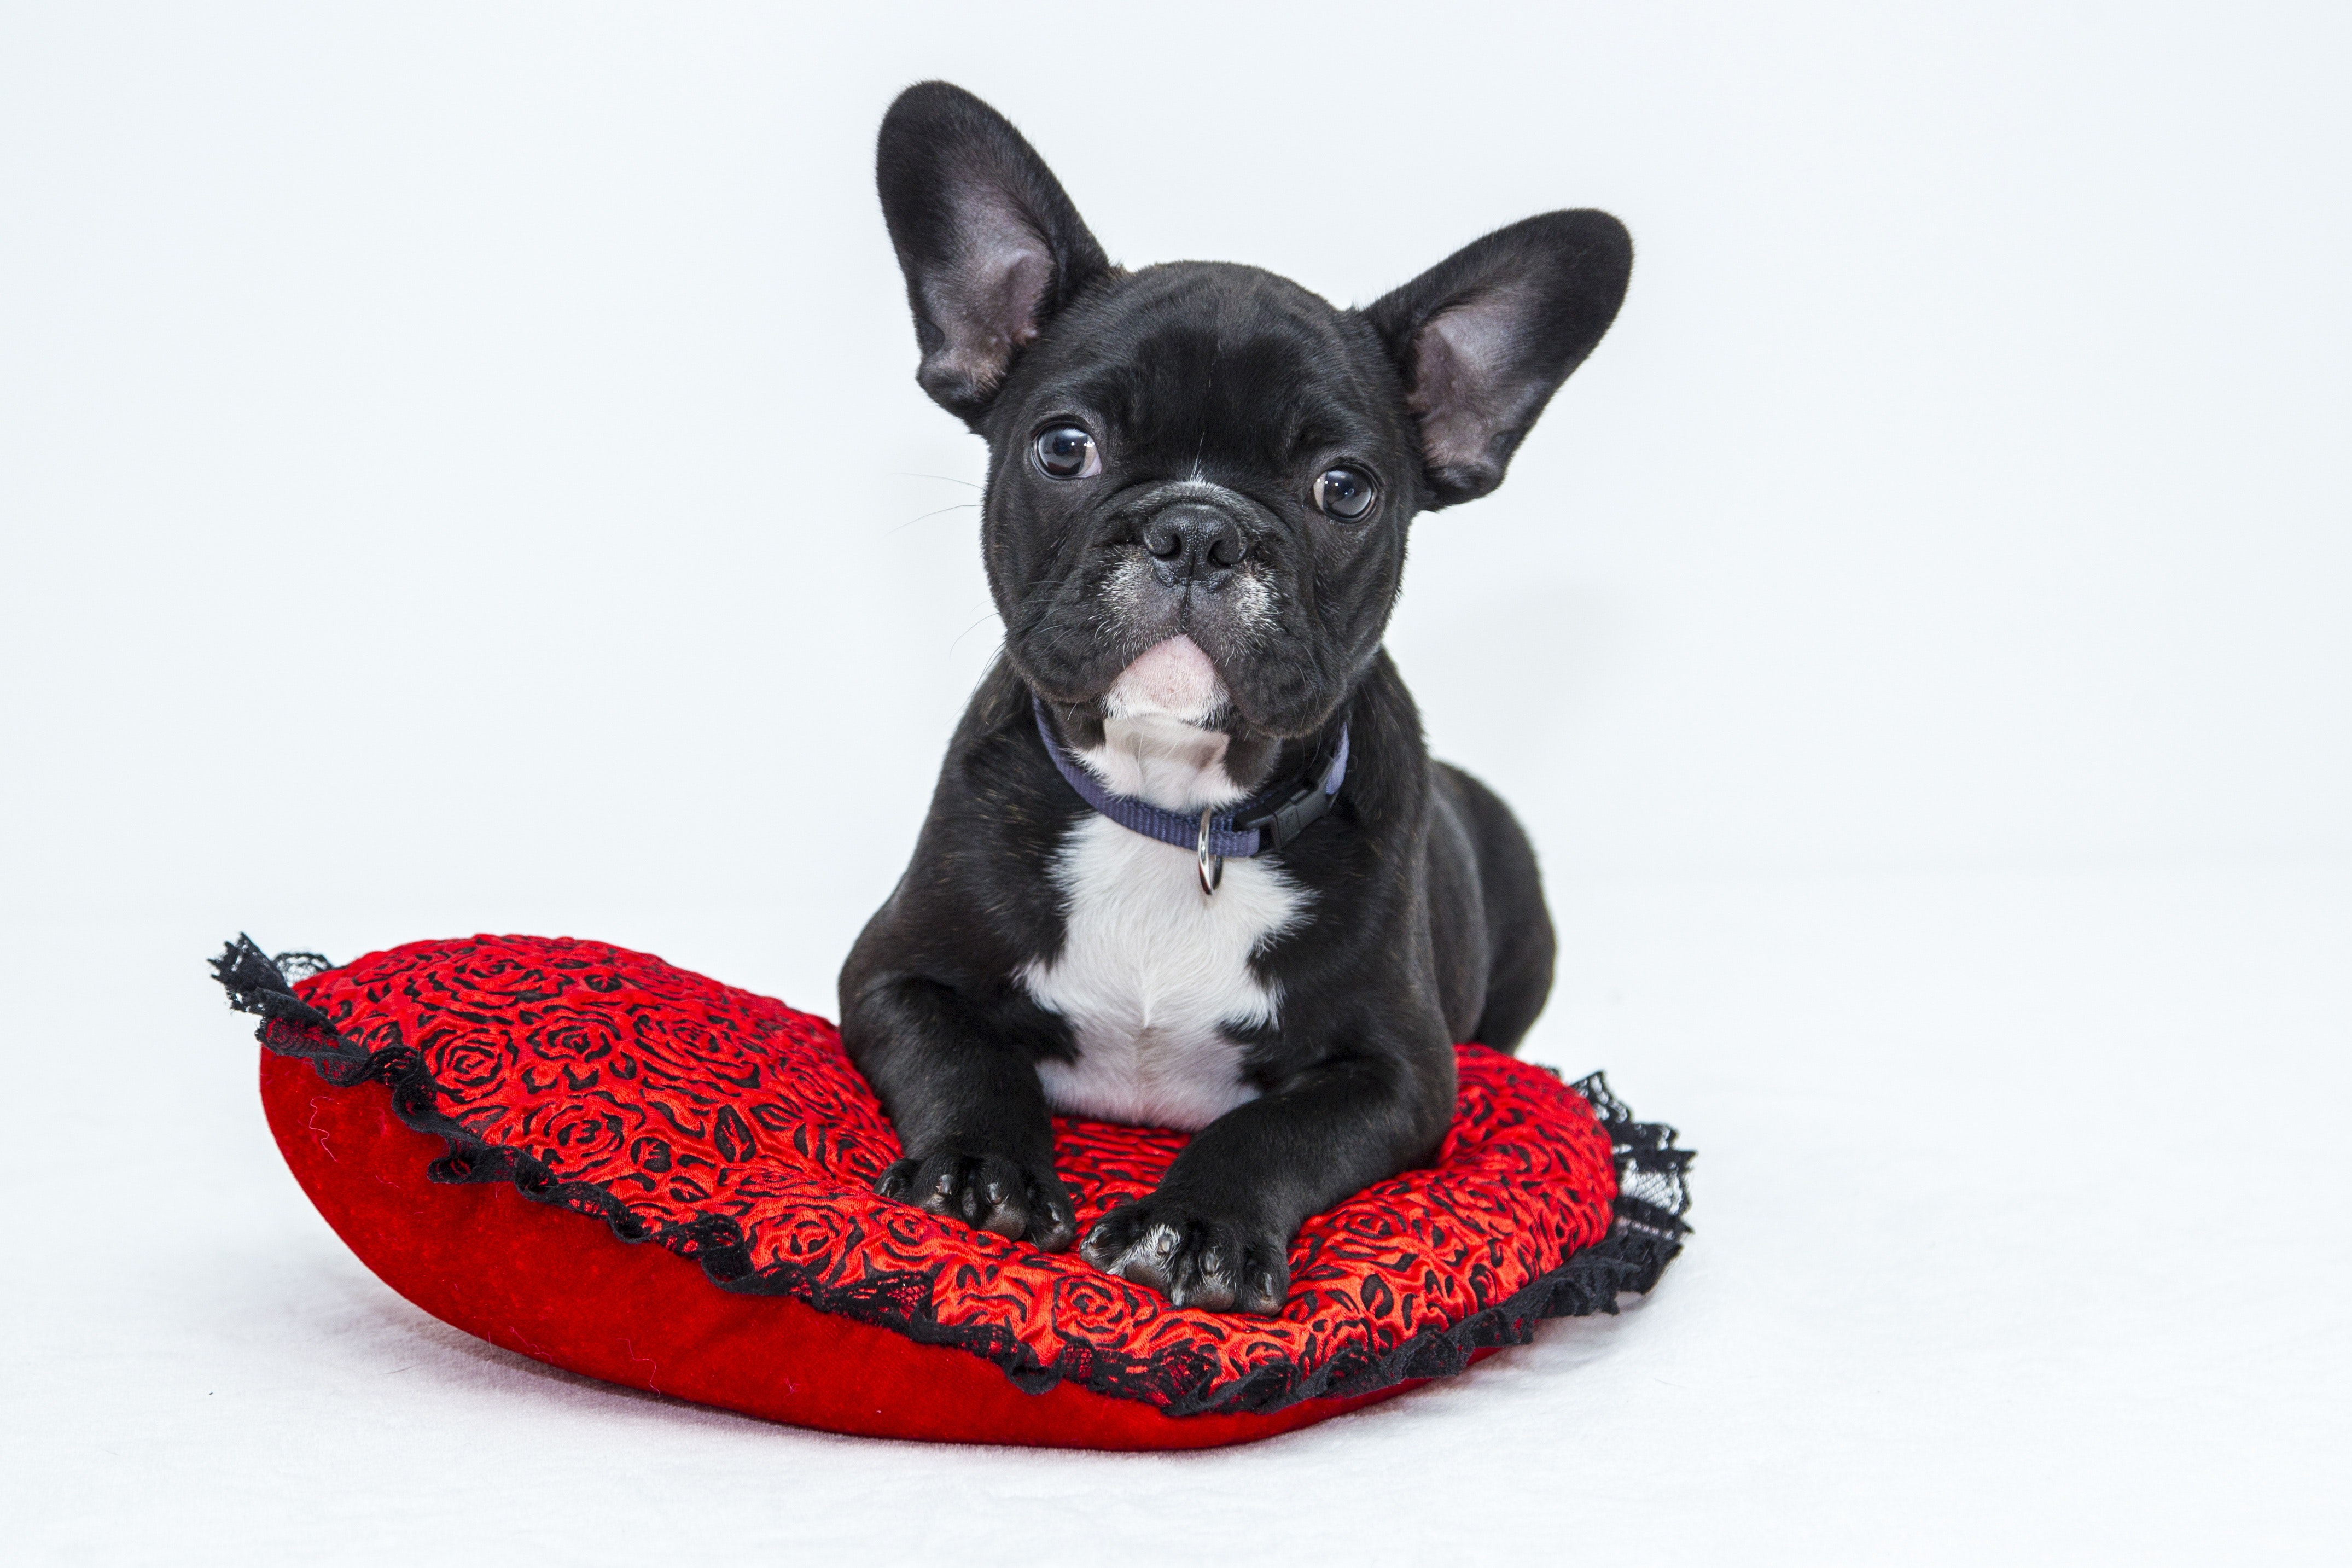 French Bulldog with a heart-shaped pillow